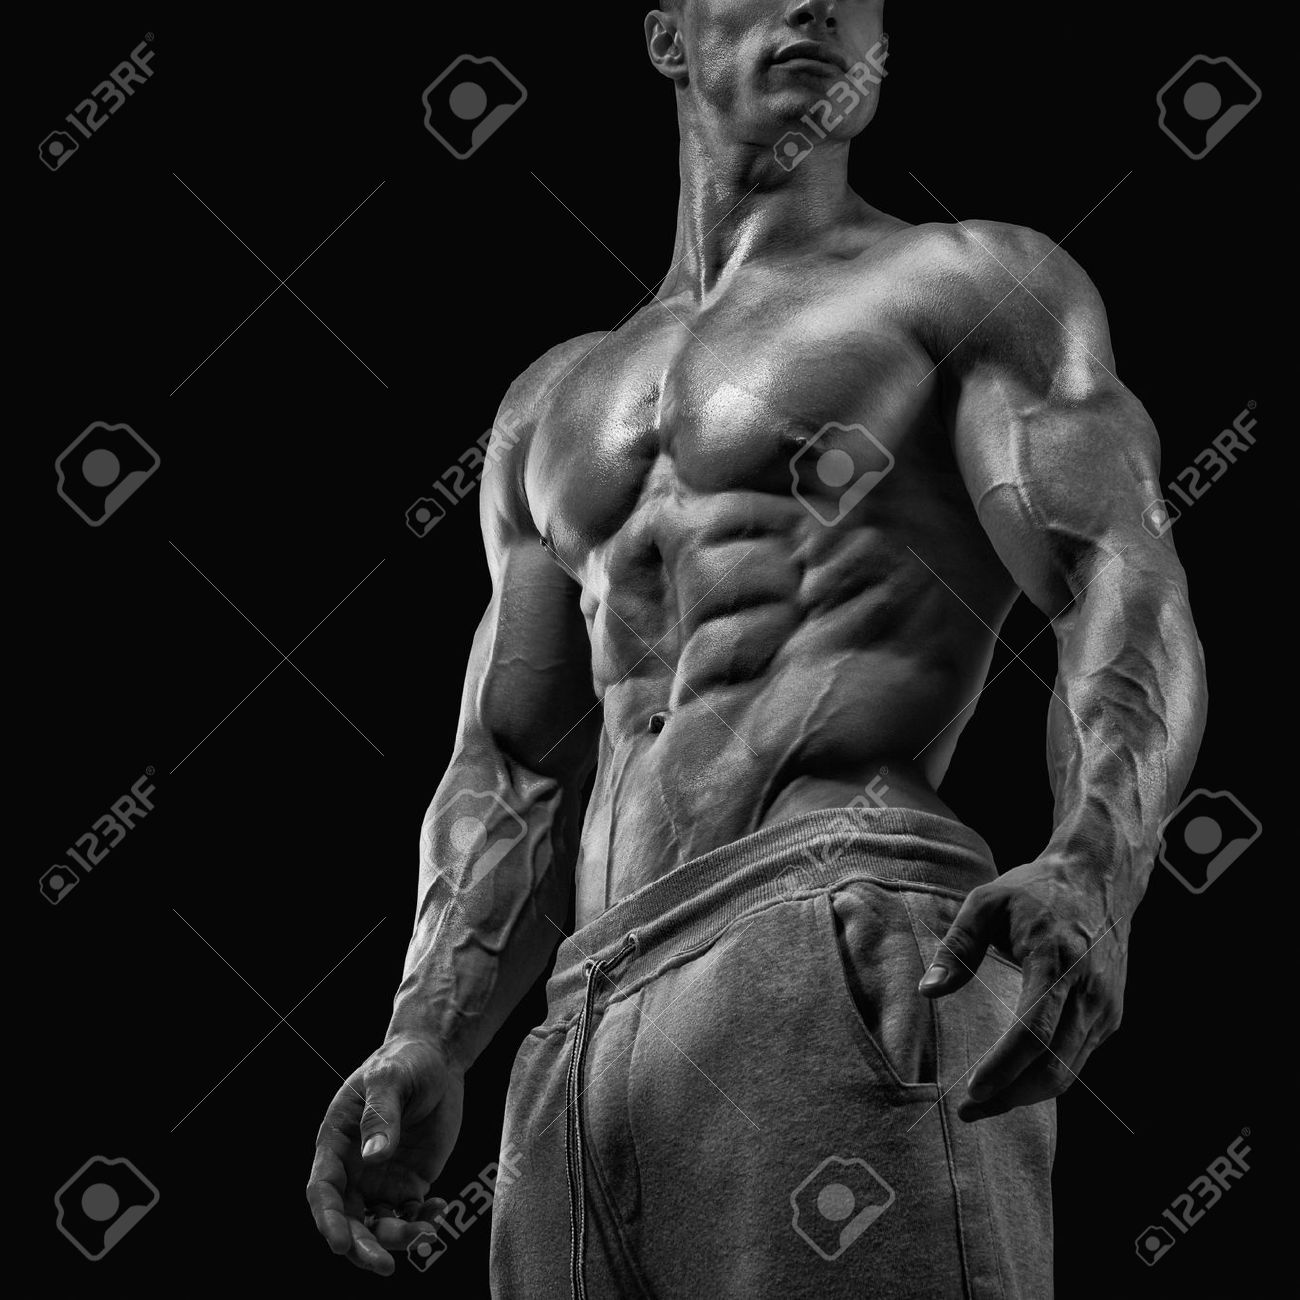 Strong and handsome young man with muscles and biceps. Close-up of a power fitness man. Black and white photo Stock Photo - 44585827